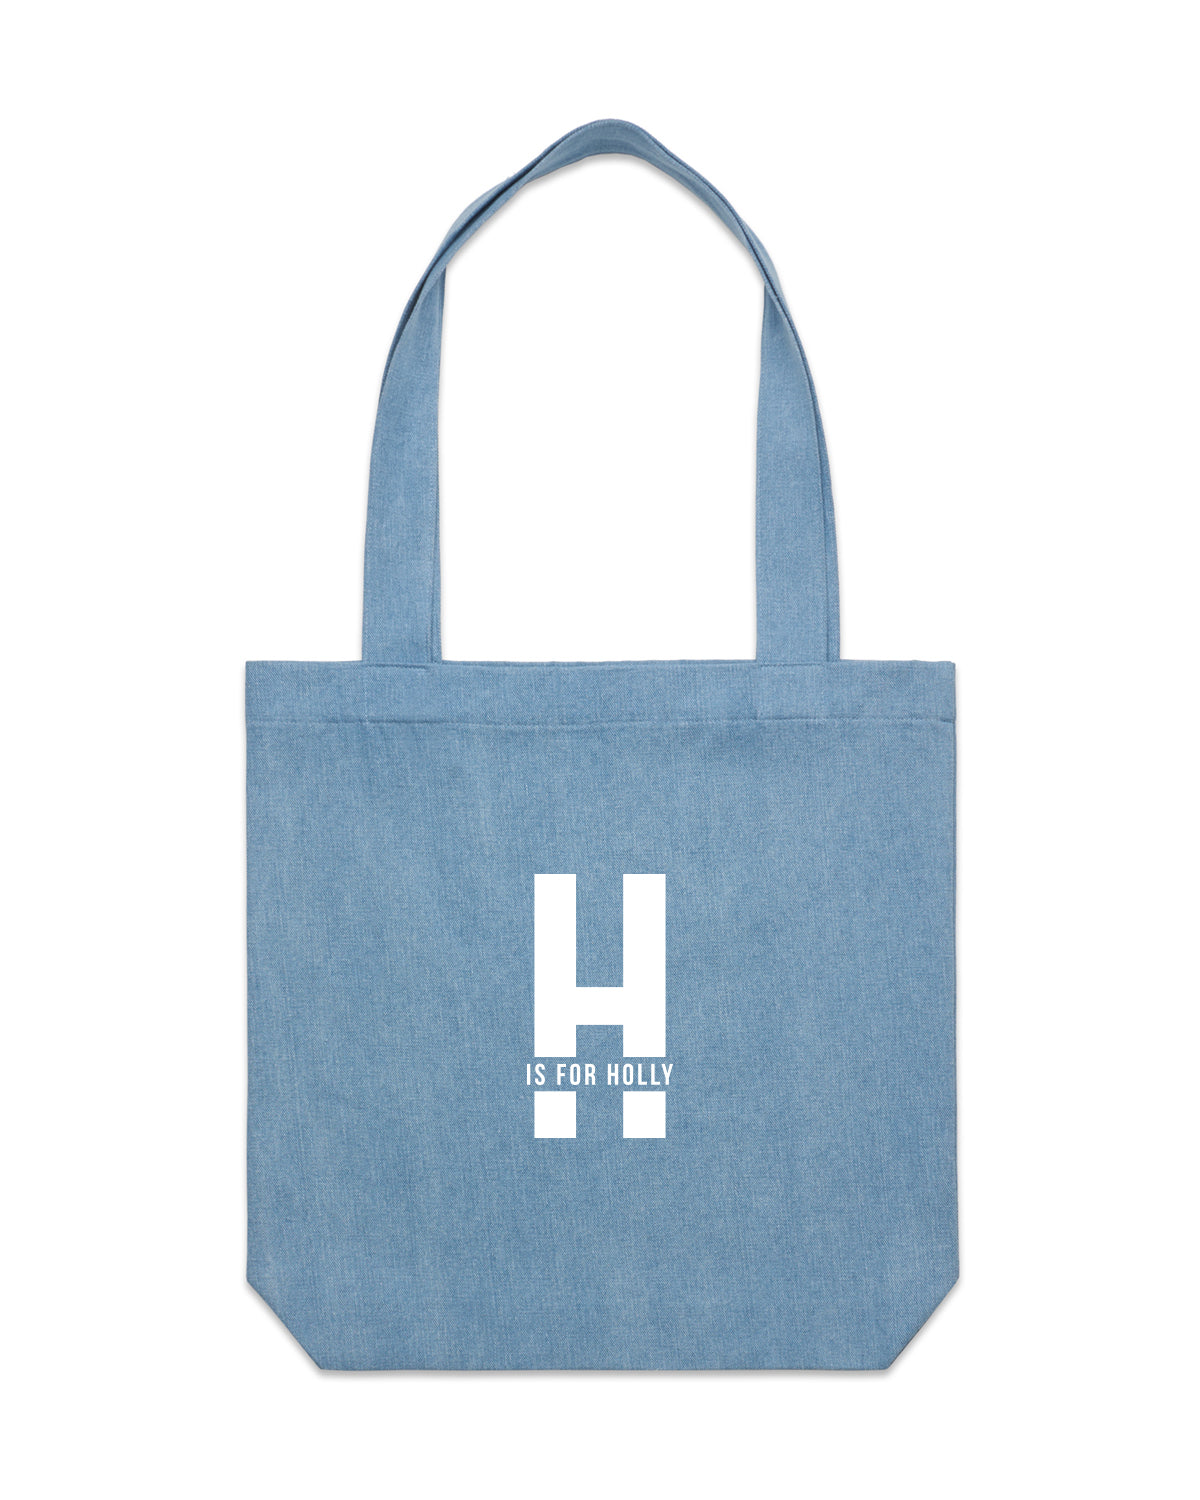 Is For Name | Denim Tote - Personalised Clothing | EAST ON 18th